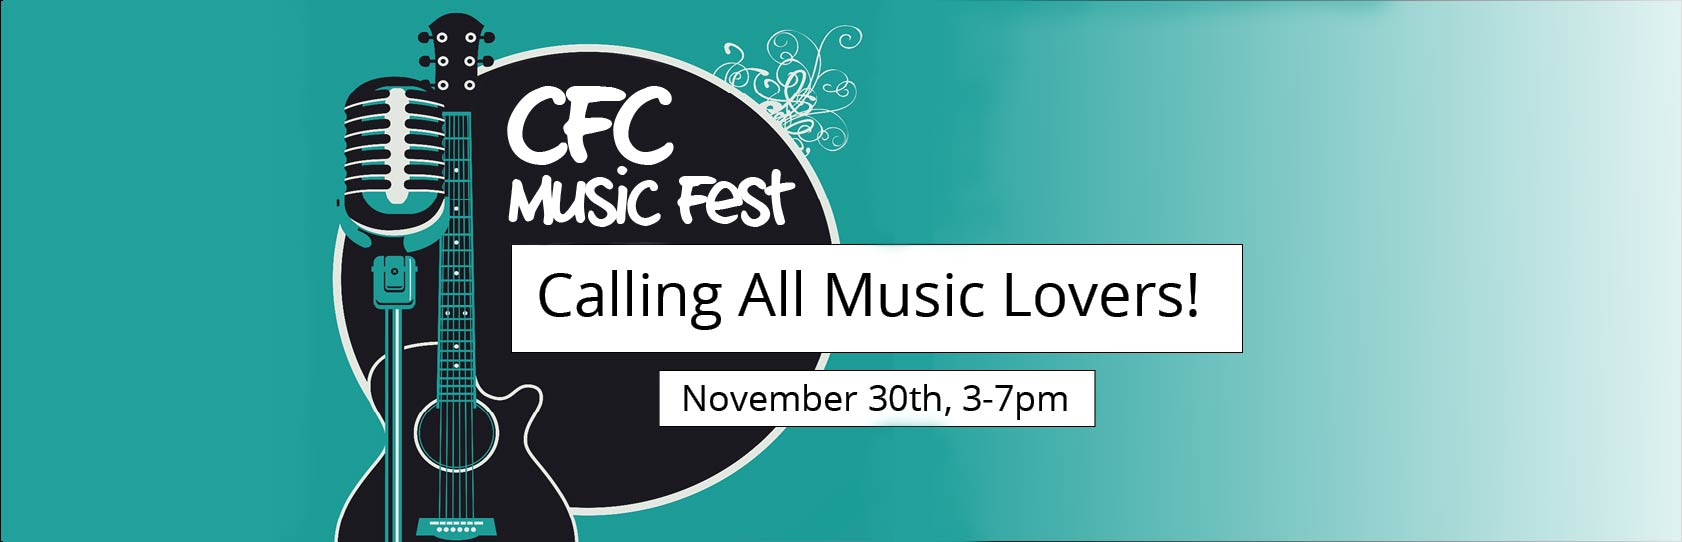 banner with guitar and CFC music fest